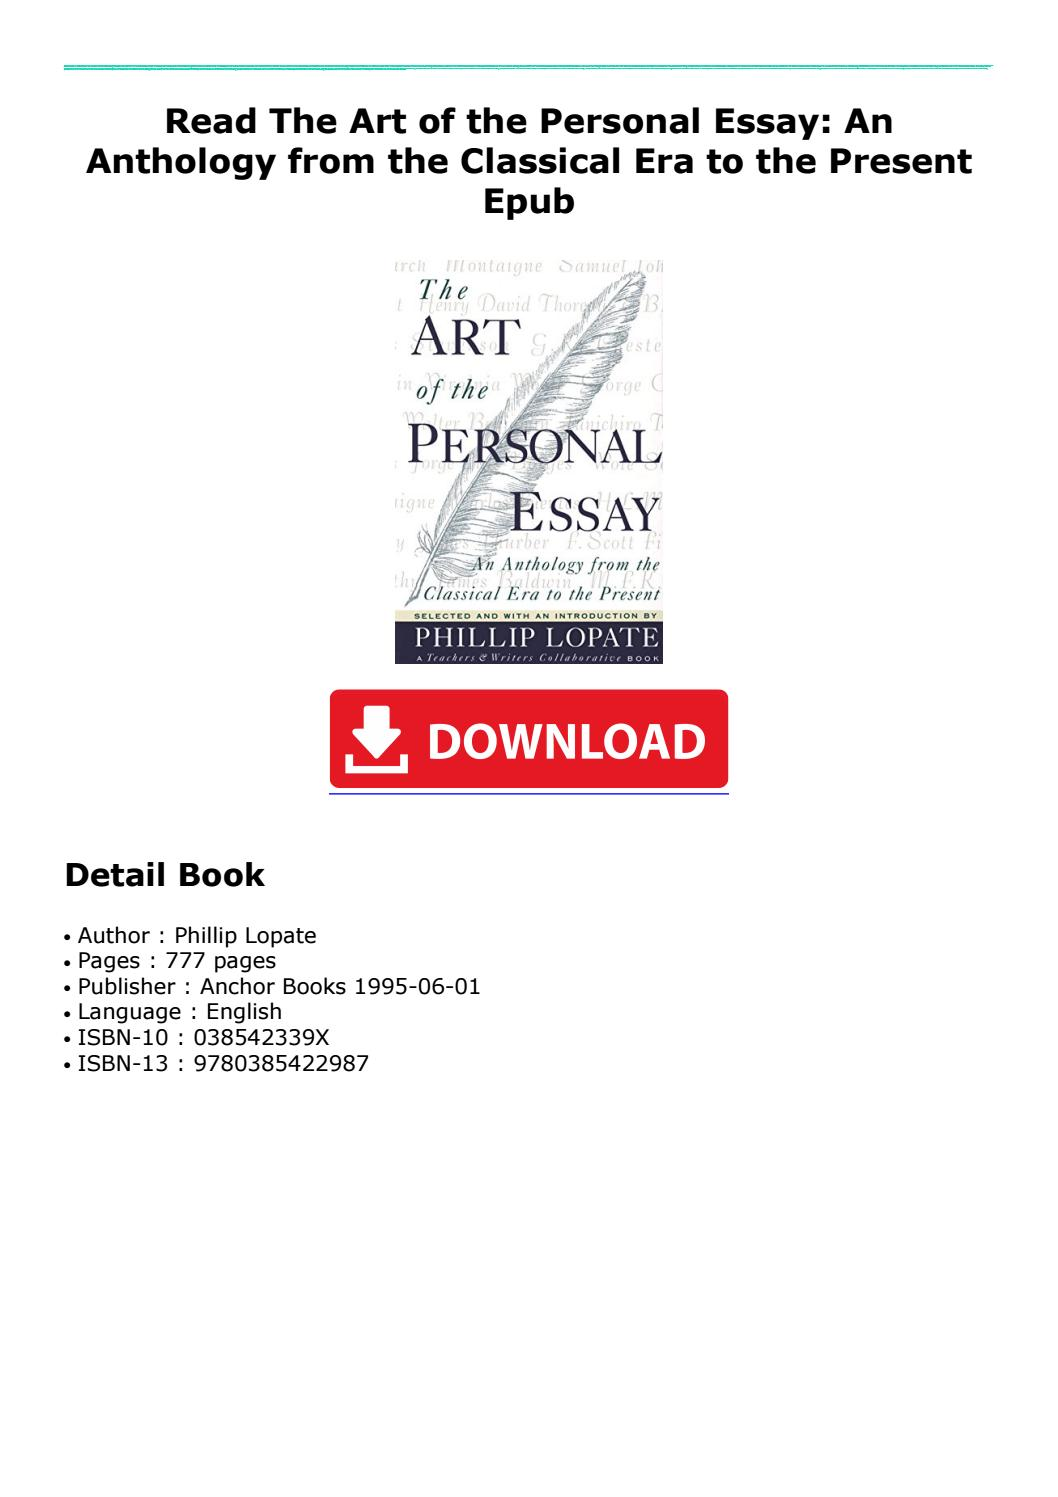 005 Essay Example Page 1 The Art Of Beautiful Personal Phillip Lopate Table Contents Sparknotes Full